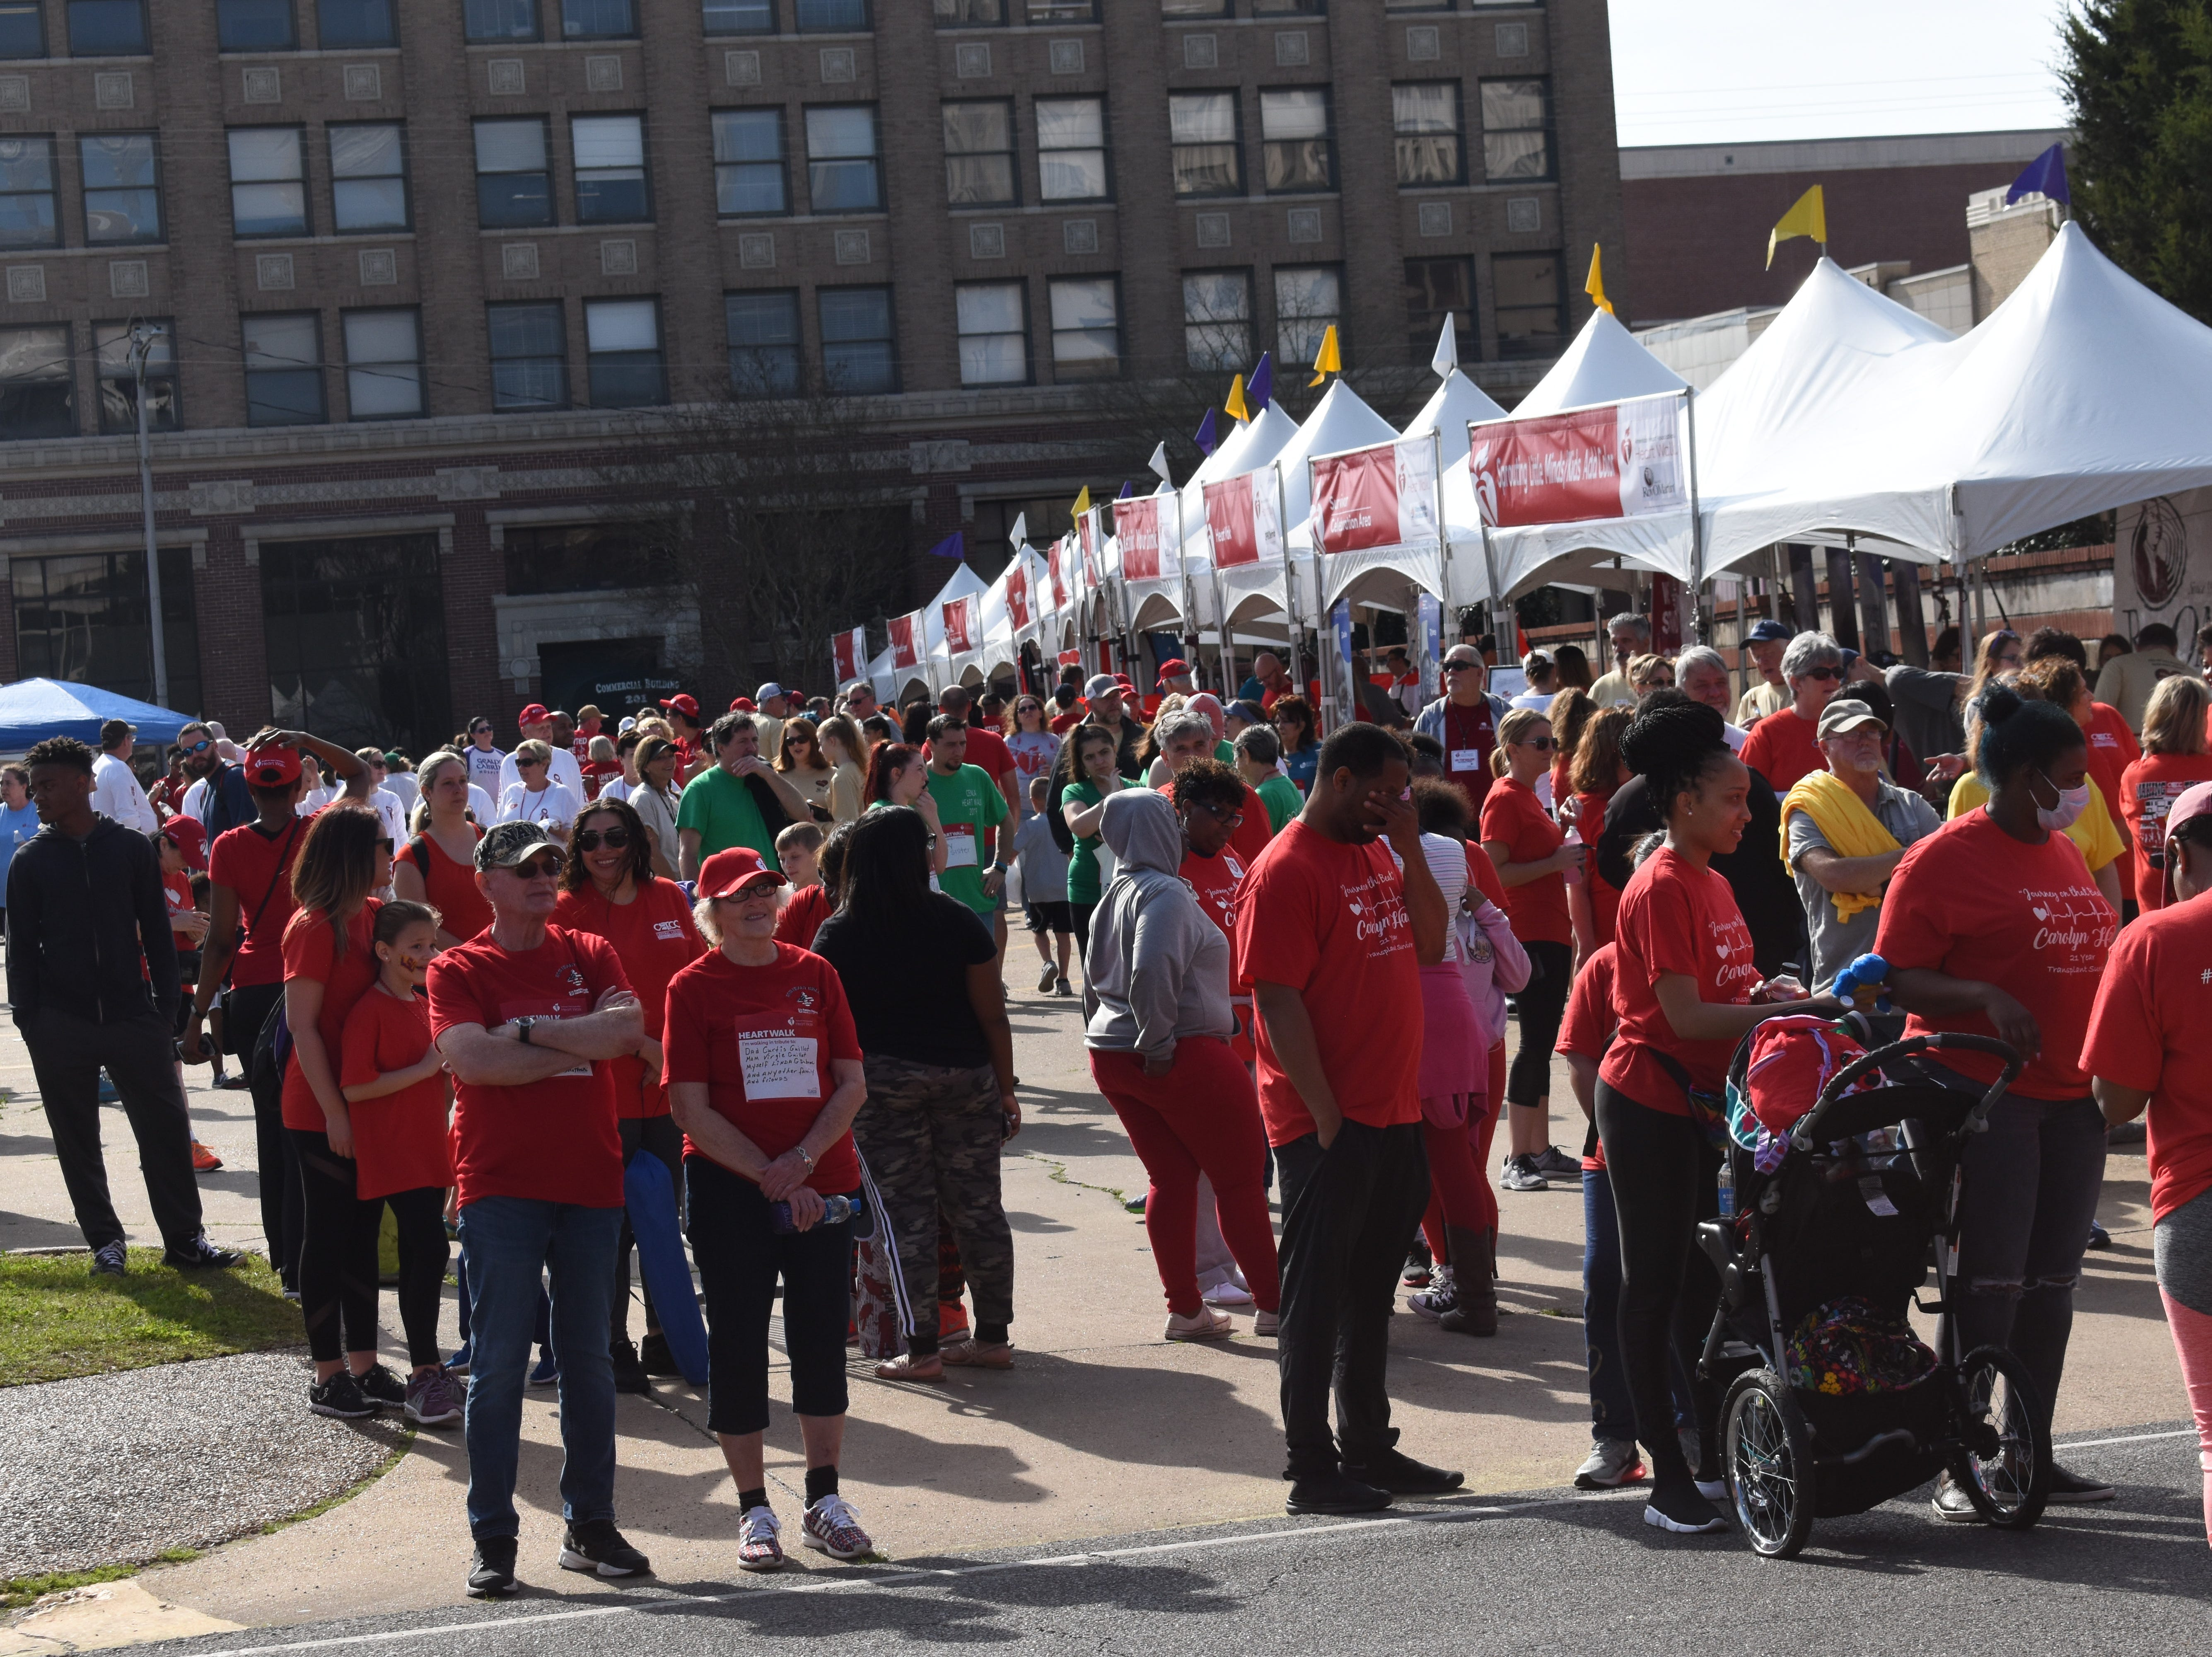 Over 4,000 people participated in events held for the 2019 Cenla Heart Walk in downtown Alexandria held Saturday, March 9, 2019. As of Saturday afternoon, over $218,051 was raised with the goal amount being $230,000. The top companies at the time were RoyOMartin with $35,497; Rapides Regional Medical Center with $31,602 and Southern Heritage Bank with $12,860. The top teams were Rapides Regional Medical Center with $31,577; RoyOMartin with $28,938 and Southern Heritage Bank with $12,005. Top fundraisers were Tina Greer with $6,973; Micah Walker with $5,165 and Anthony Bunting with $5,000.